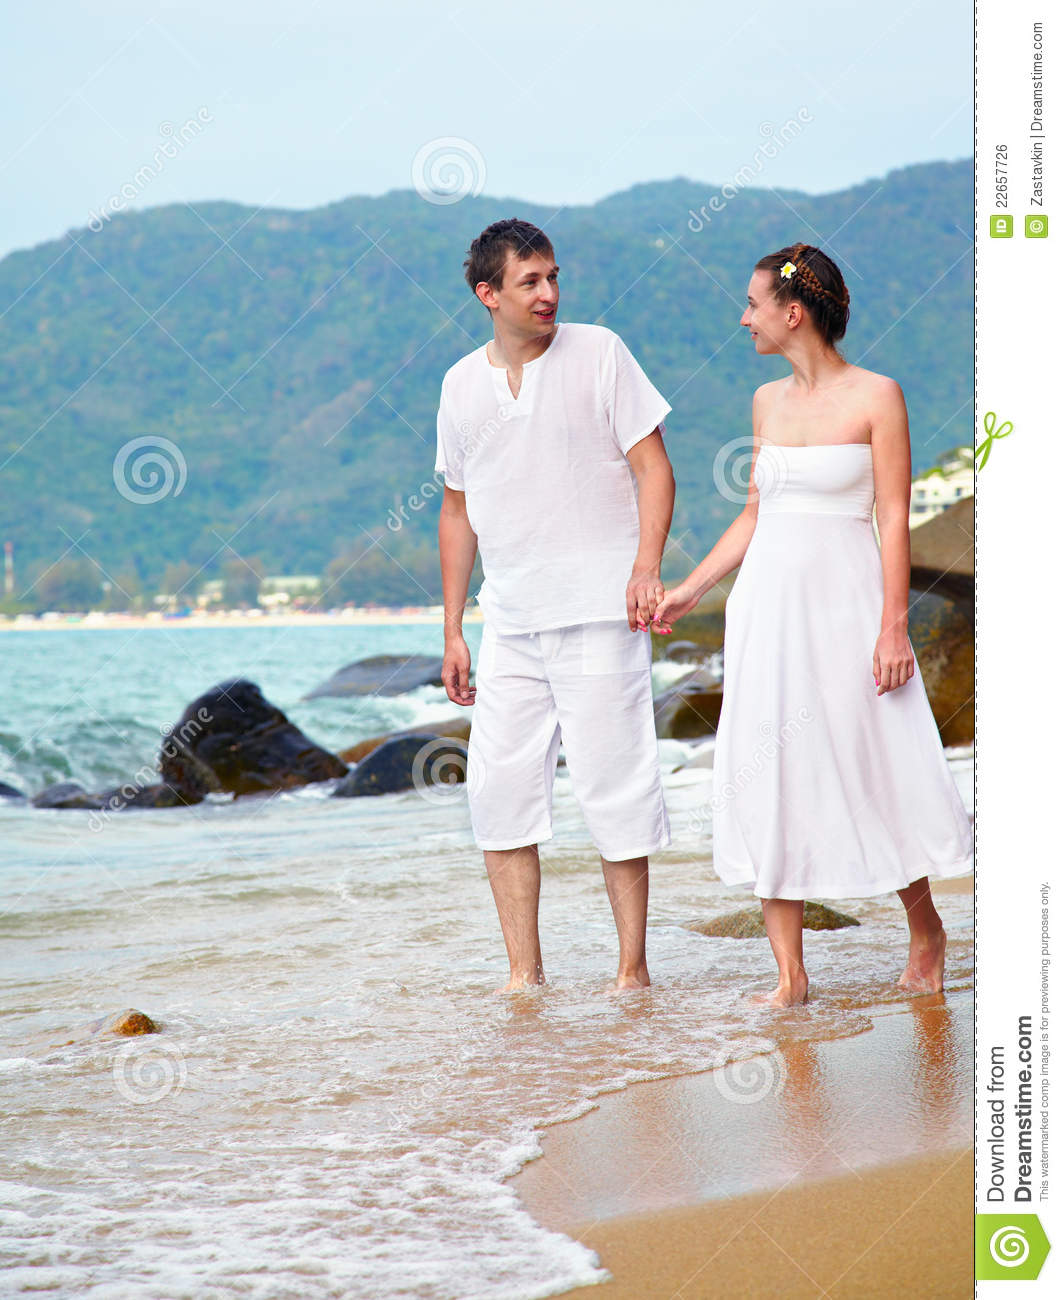 Romantic Couple At Beach Stock Photo. Image Of Holiday